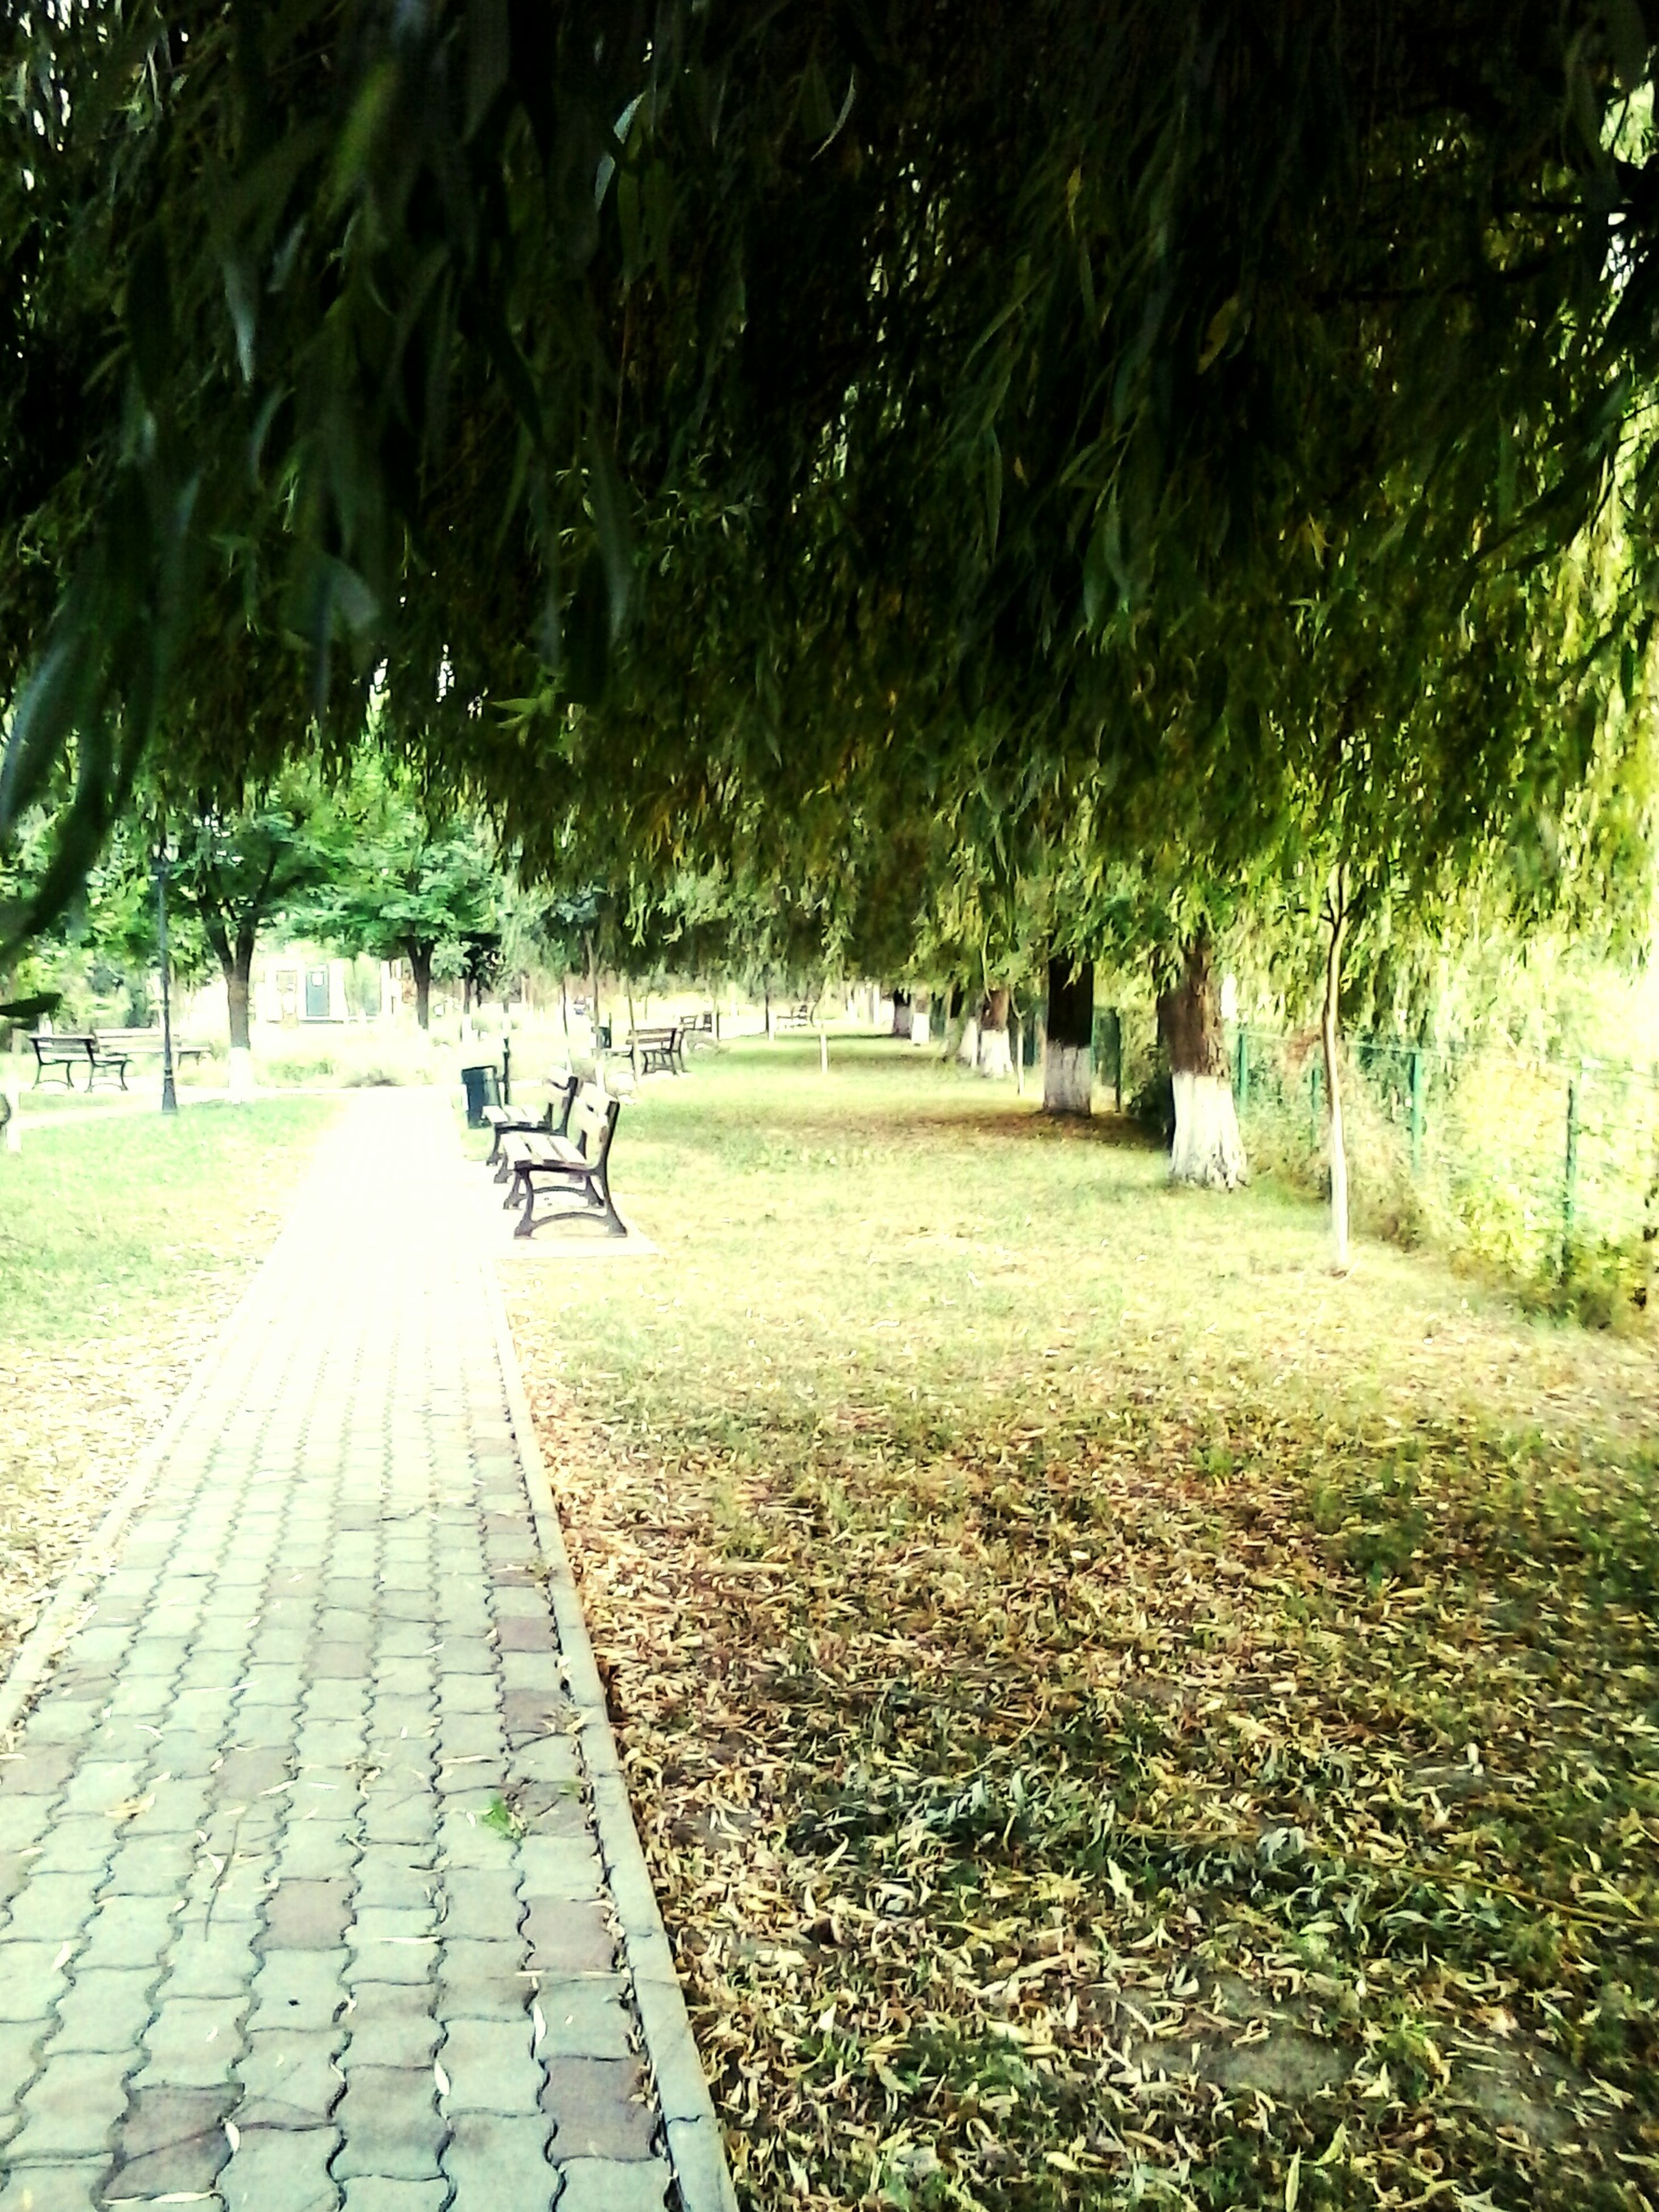 grass, tree, park - man made space, footpath, shadow, green color, growth, sunlight, park, lawn, nature, grassy, walkway, bench, the way forward, tranquility, pathway, outdoors, day, incidental people